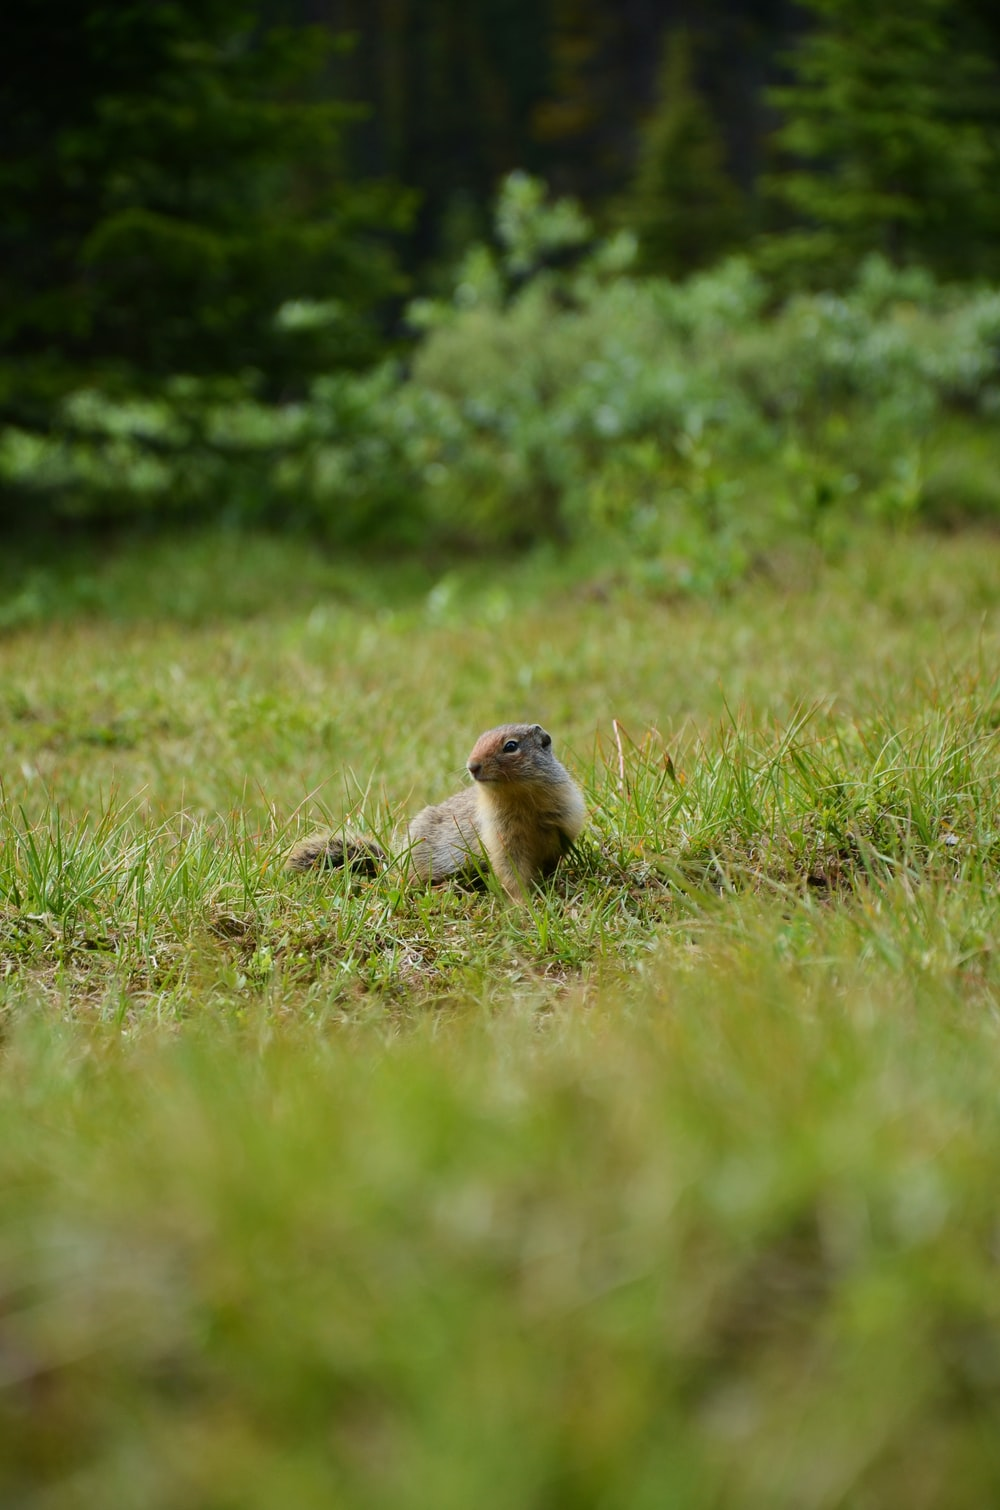 brown rodent on grass